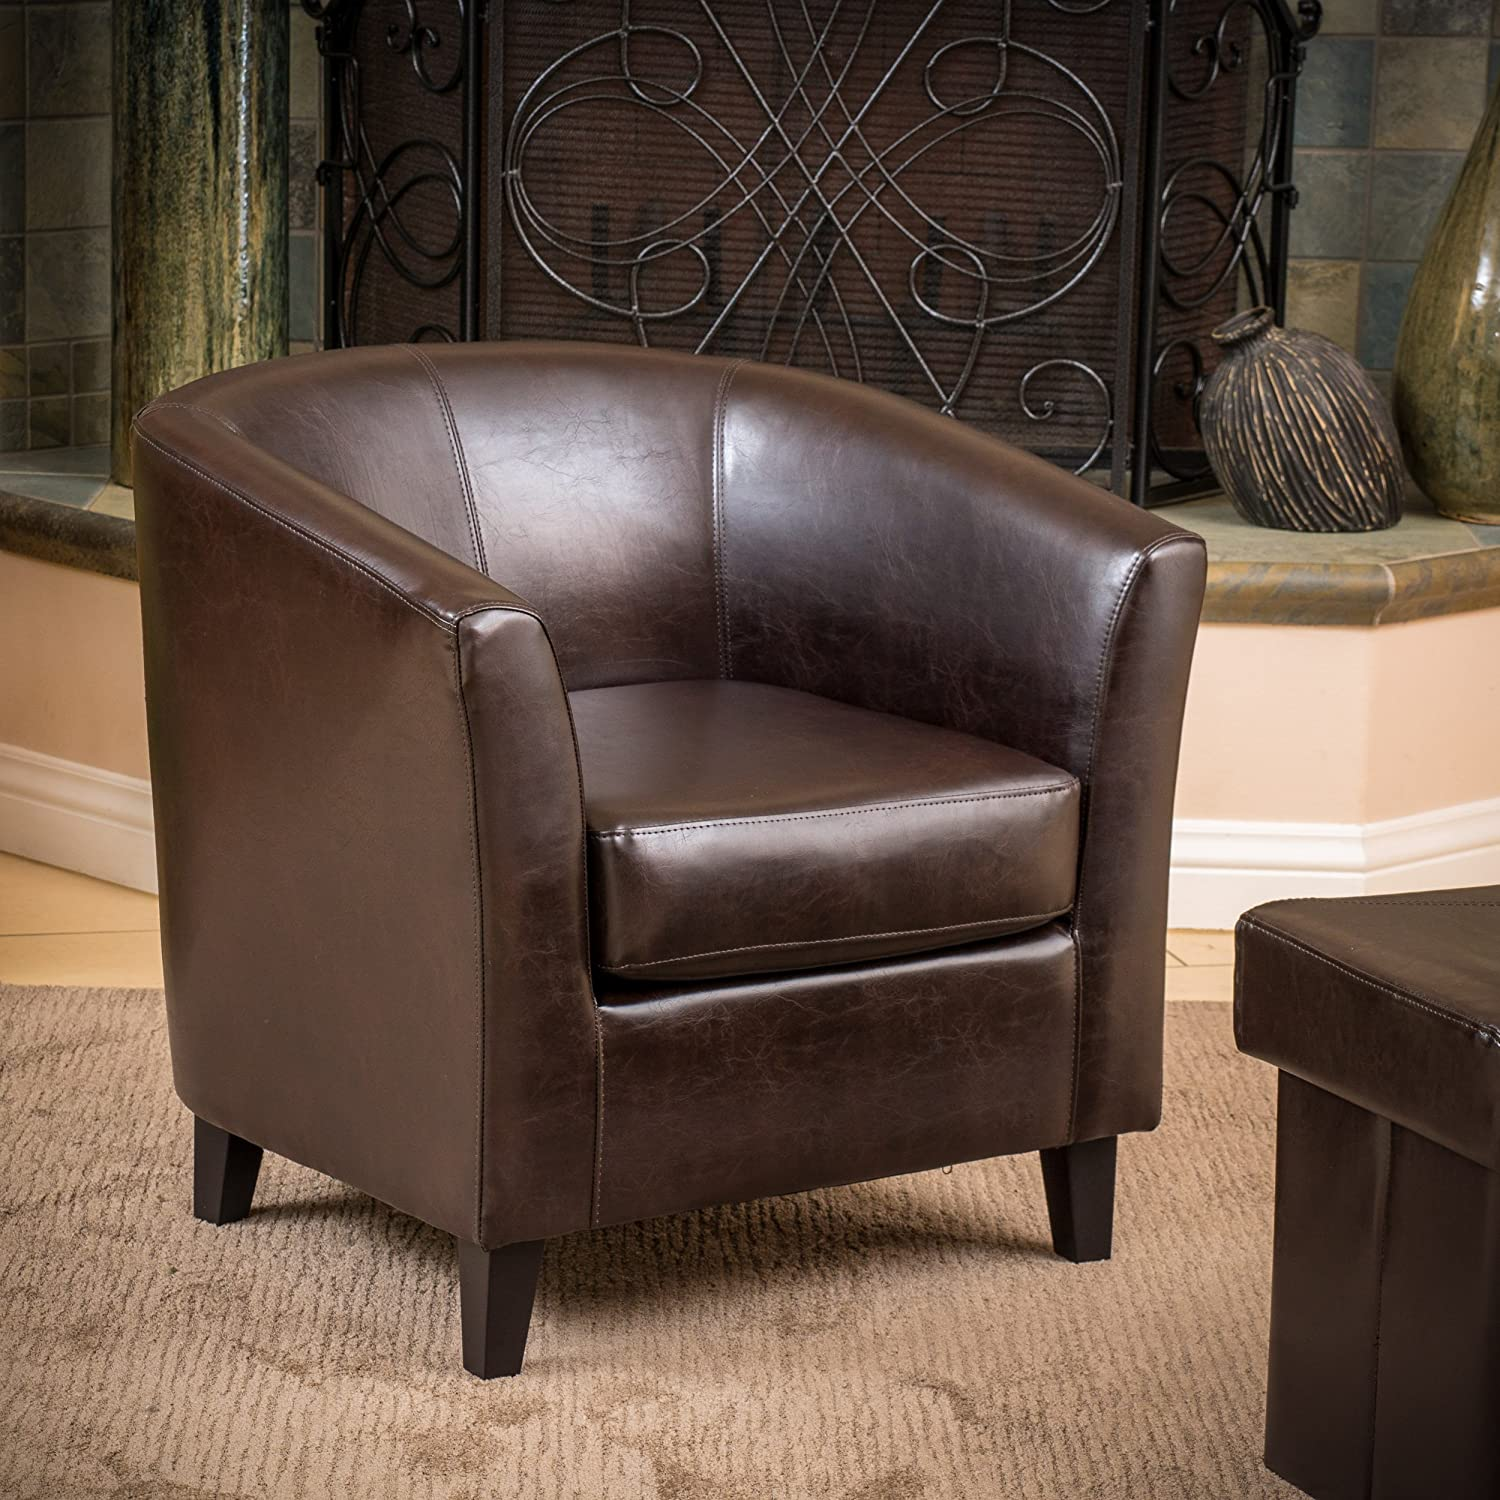 Classic Brown Leather Club Chair U2013 Petaluma